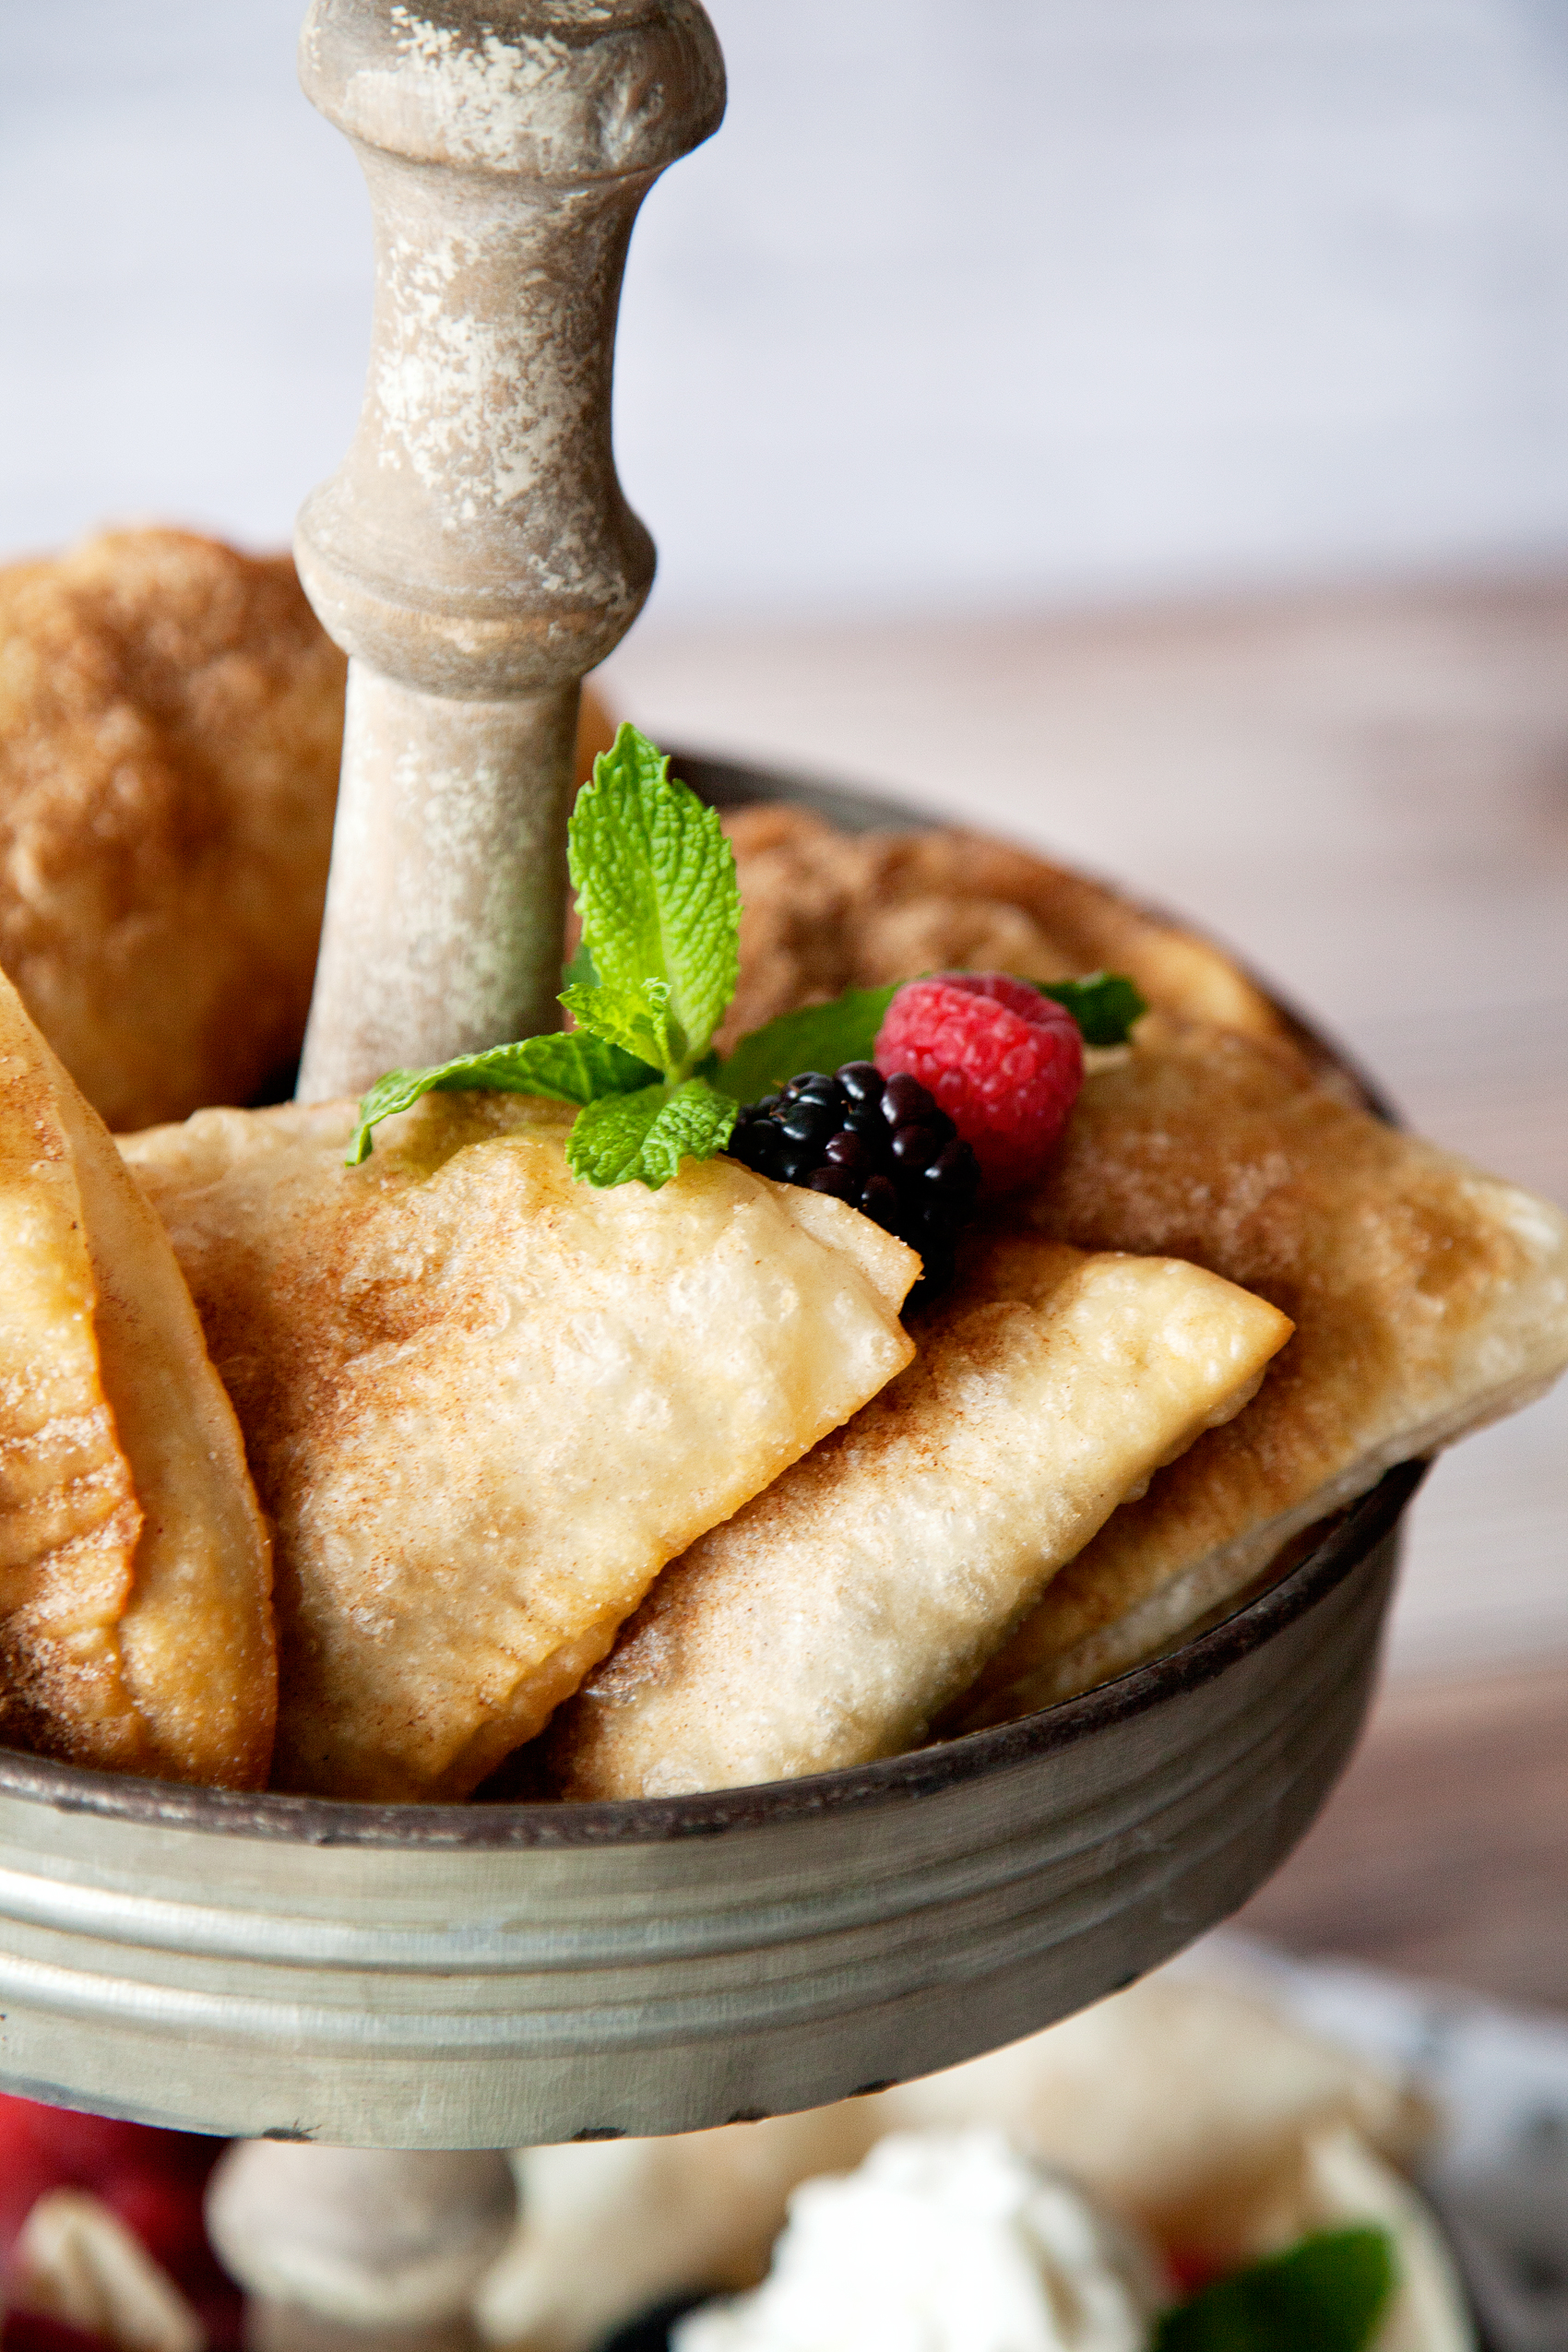 Find yourself looking for some easy dessert options? Did you know that you can find uncooked tortillas at Costco from TortillaLand®? You CAN, and you can create all kinds of fabulous tortilla desserts with them! Come learn all about the Baked Tortilla Sundae Bowl & Easy Berry Hand Pies...